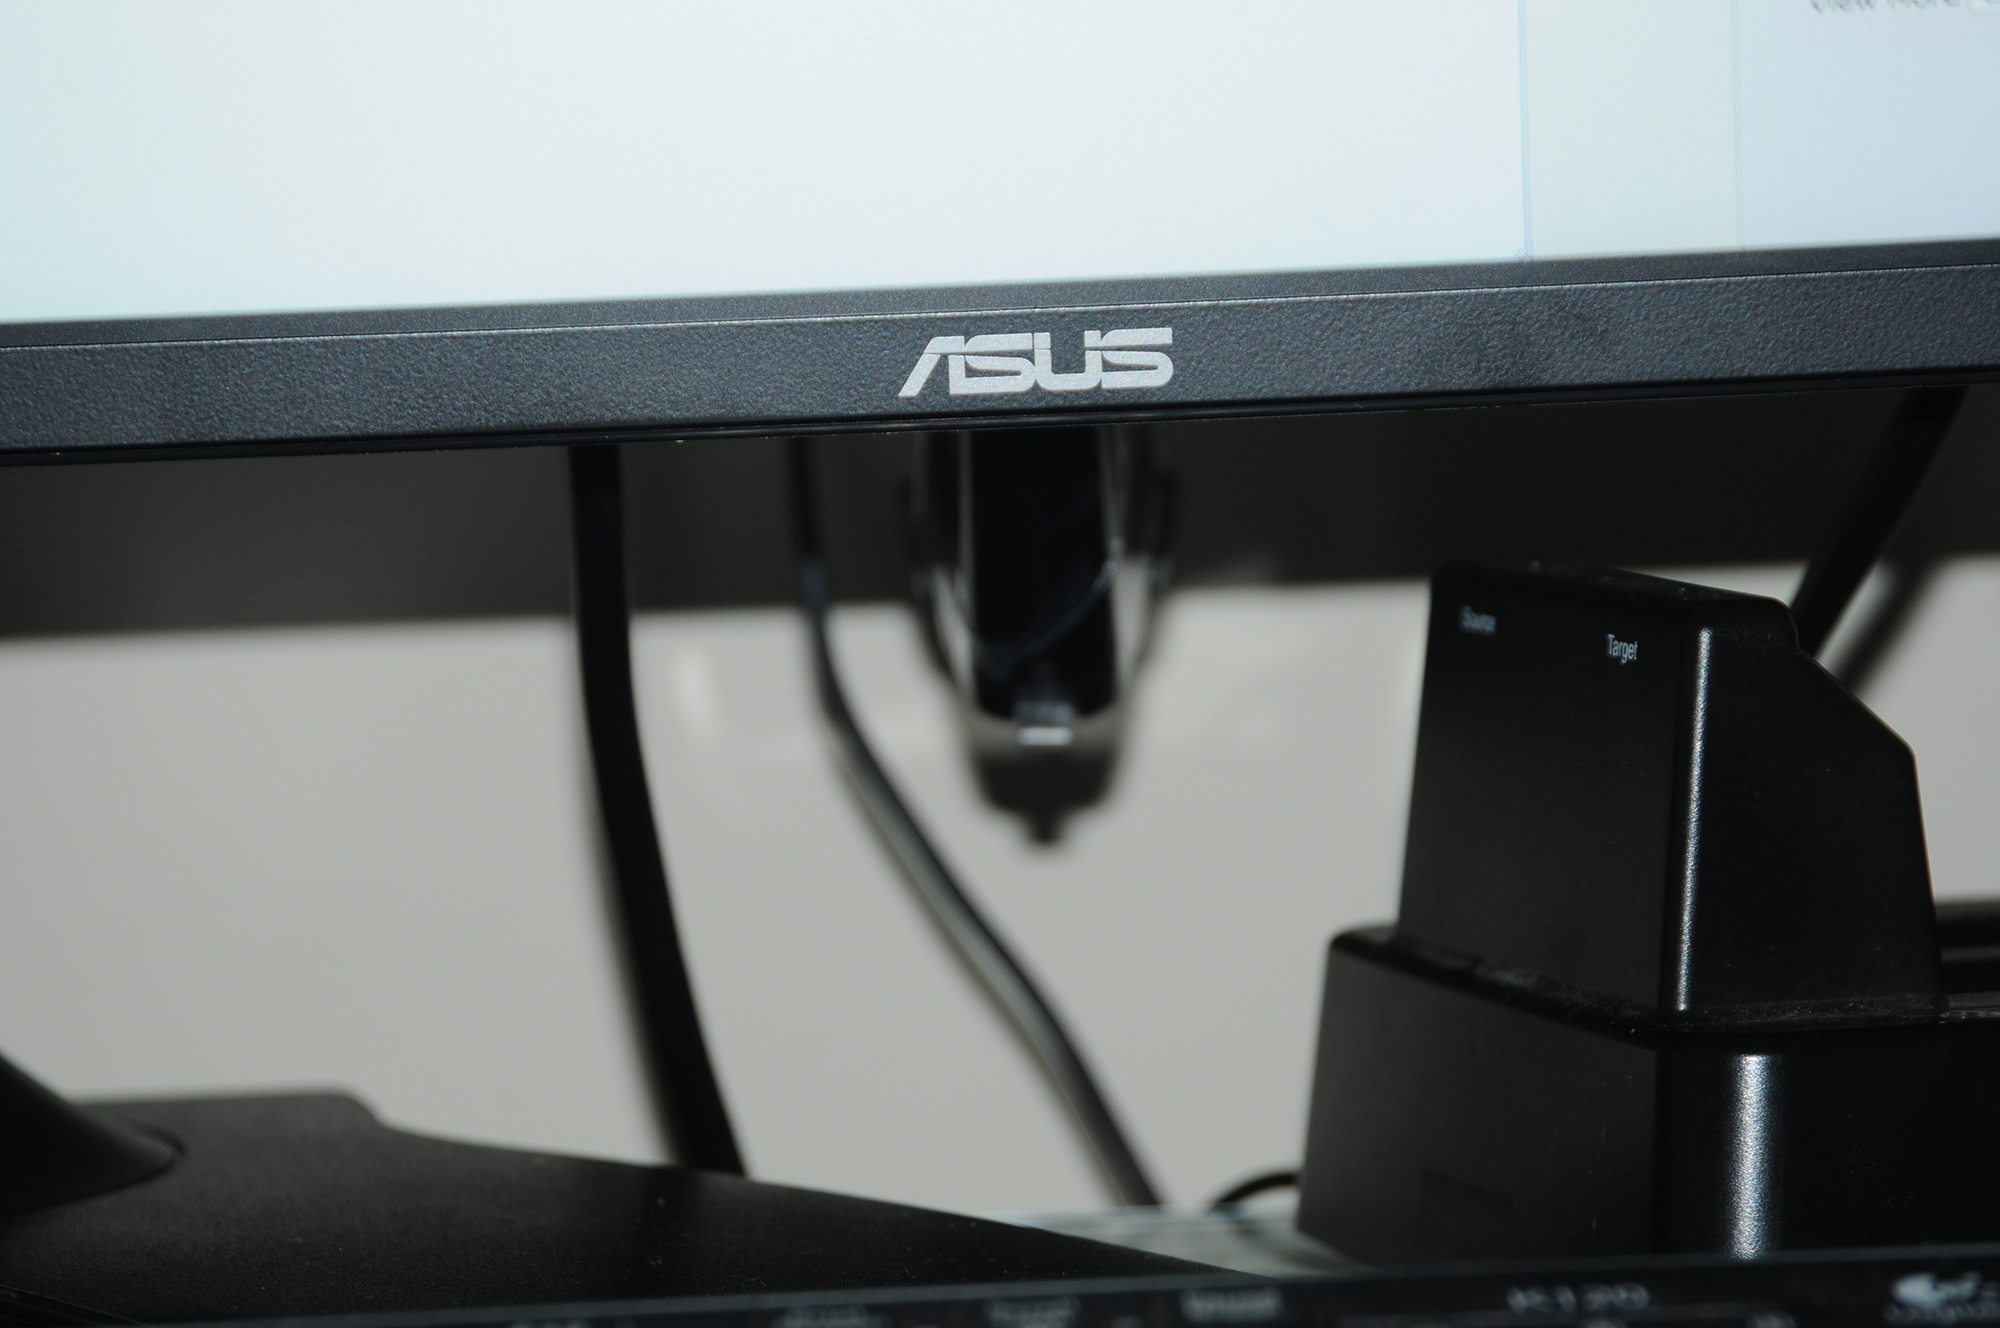 asus vn247h p monitor